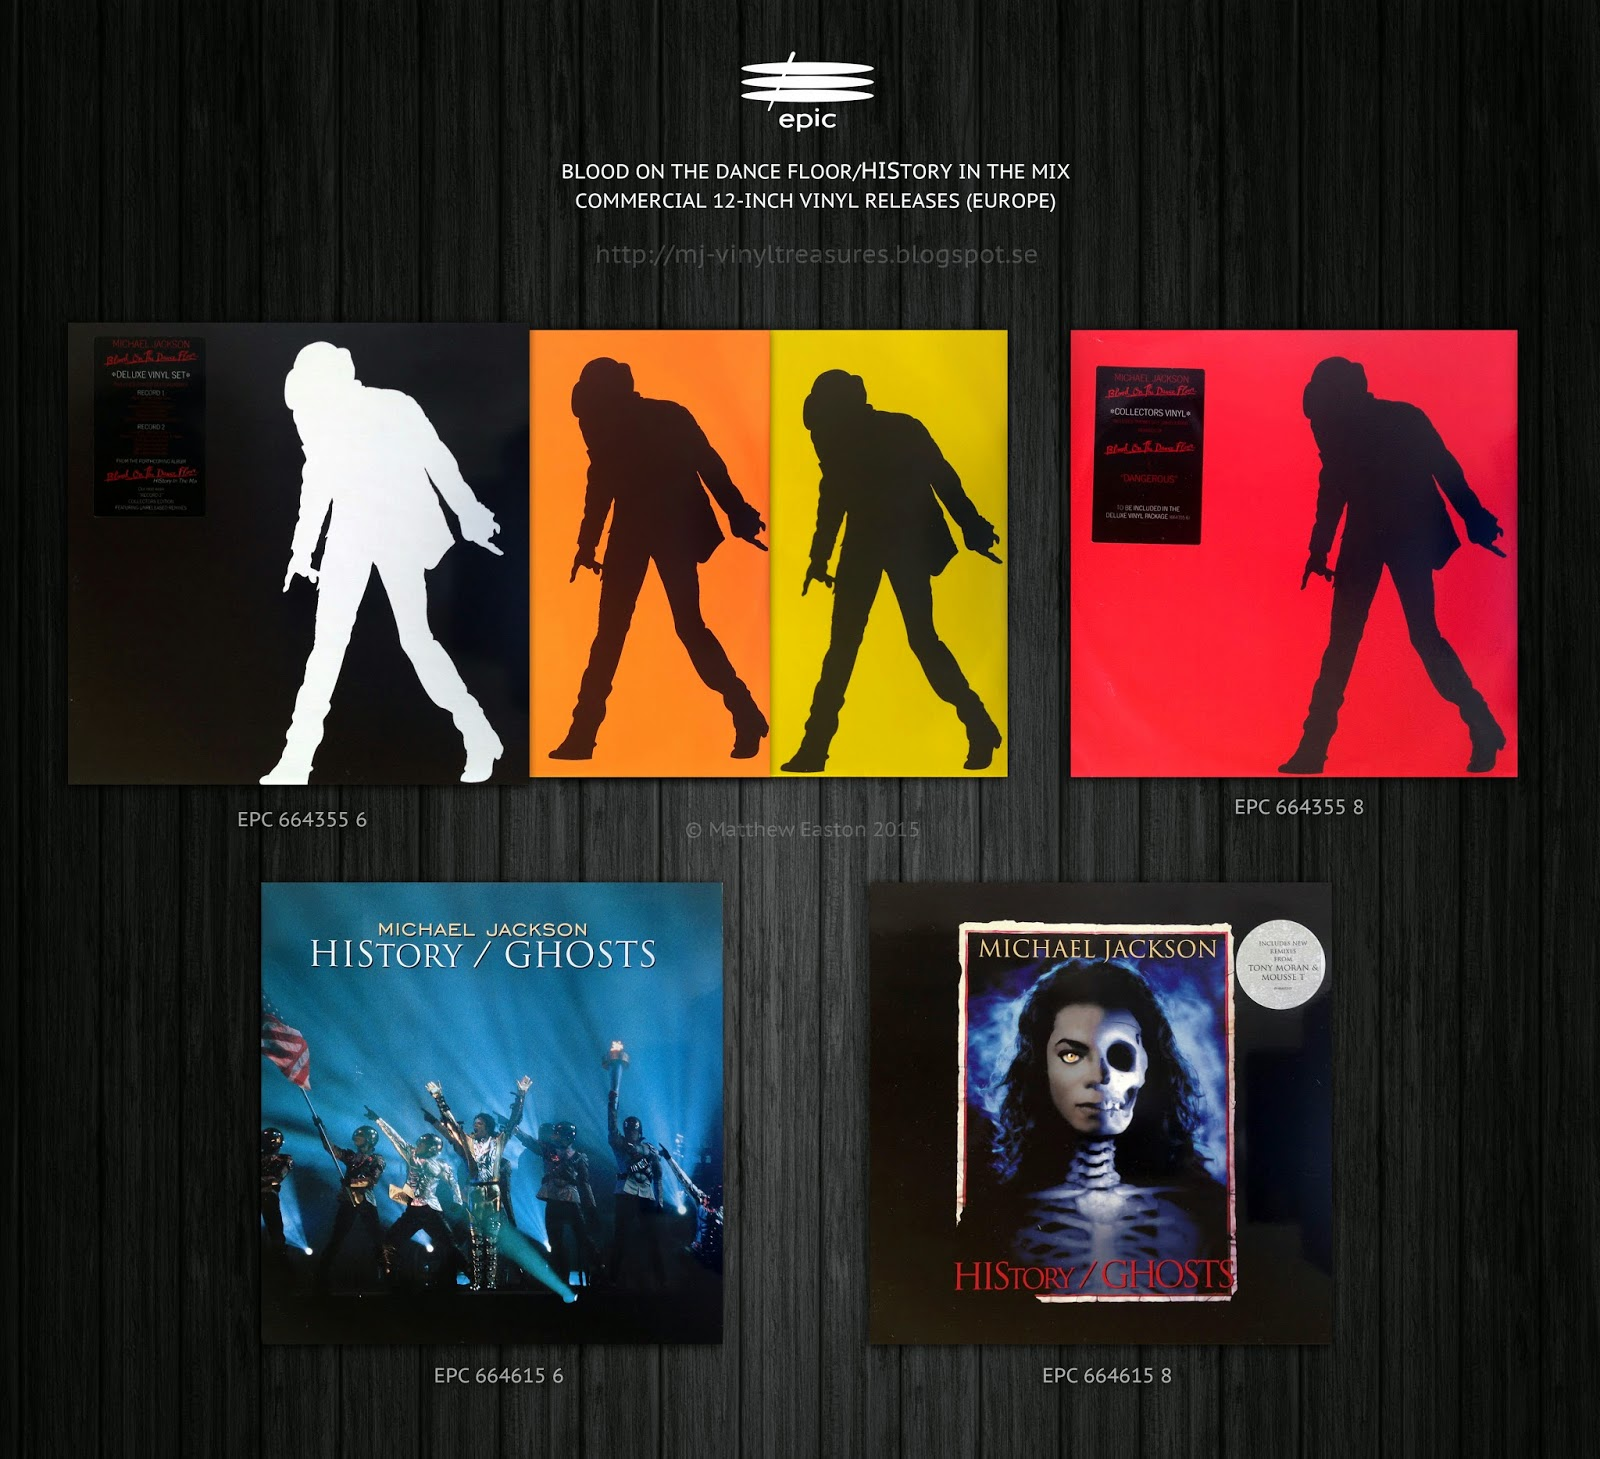 Remember The Time (Netherlands, Epic EPC 657774 7) | Michael Jackson